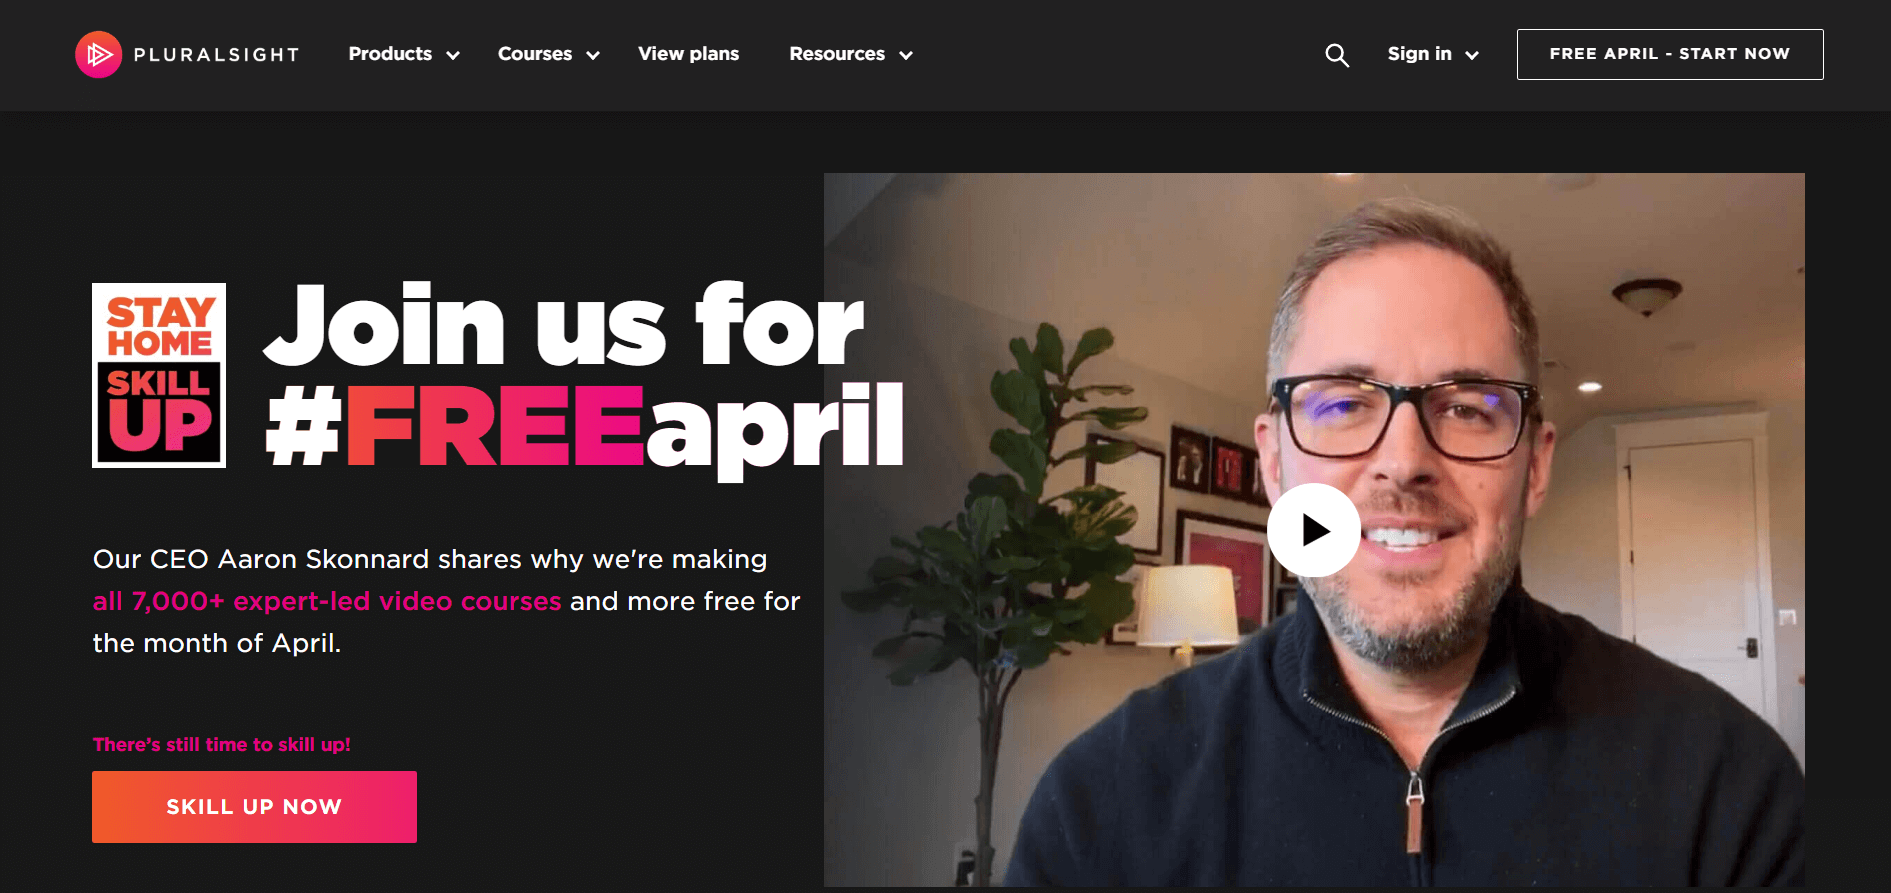 What is Pluralsight